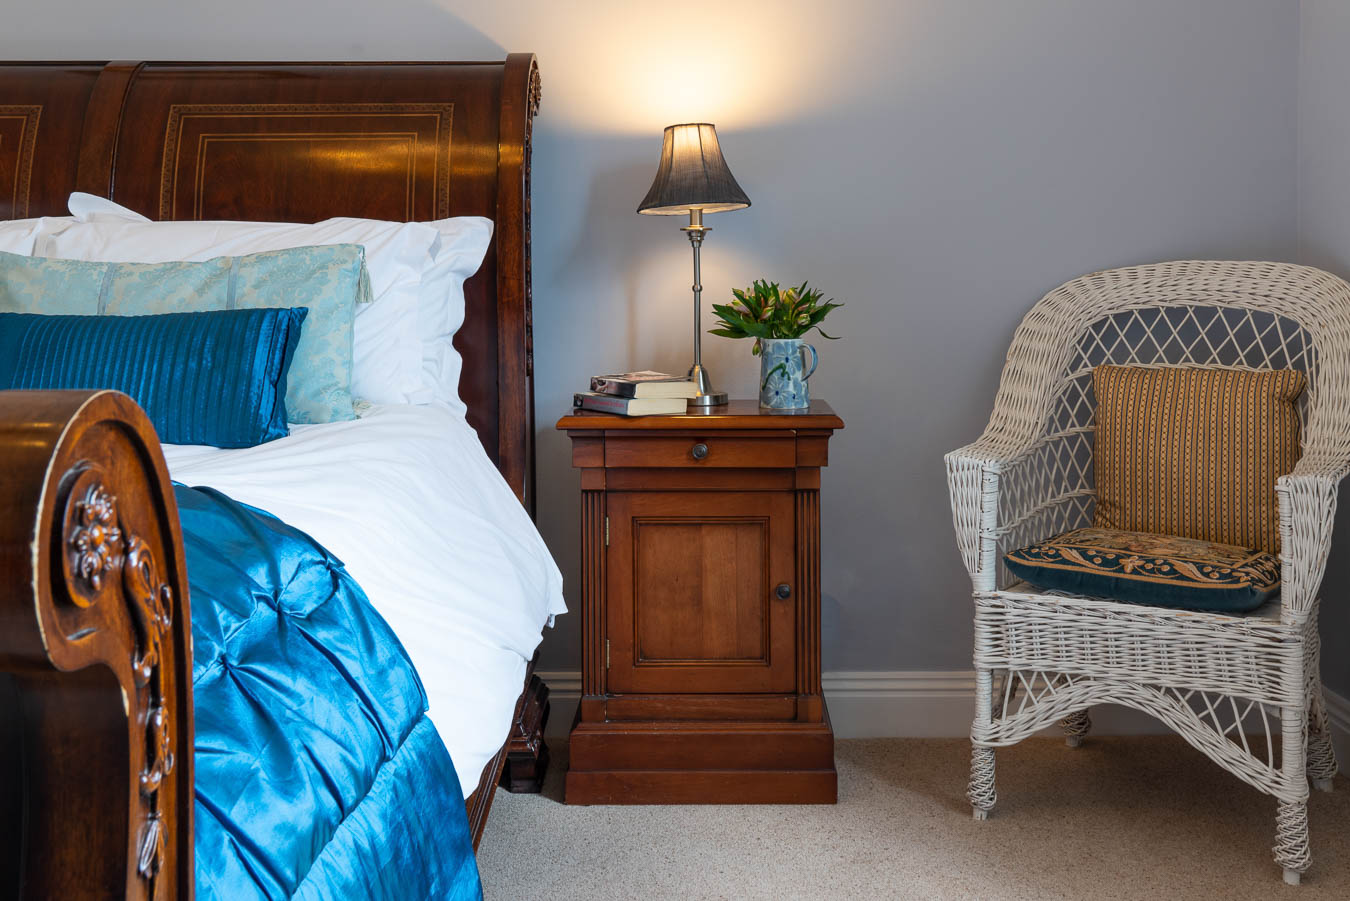 Mahogany bedside table and sleigh kingsize bed in the Blue room in Flear House.